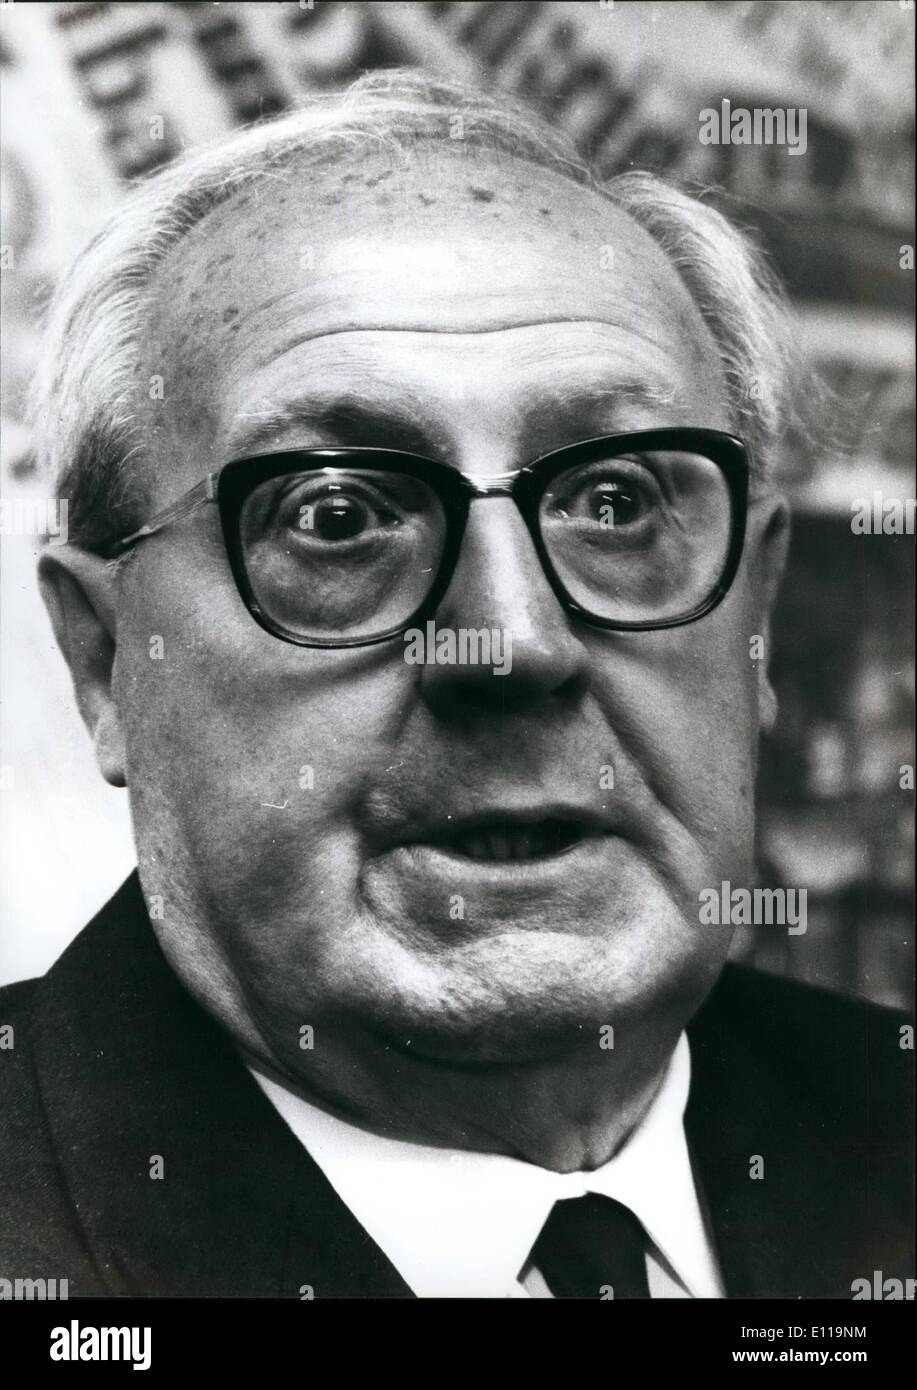 May 05, 1976 - The political leaders engaged for the propaganda for their parities for the next 20 June General election. Giuseppe Saragat. leader of PSDI (Social Democrats). He is the former President of the Republic. - Stock Image